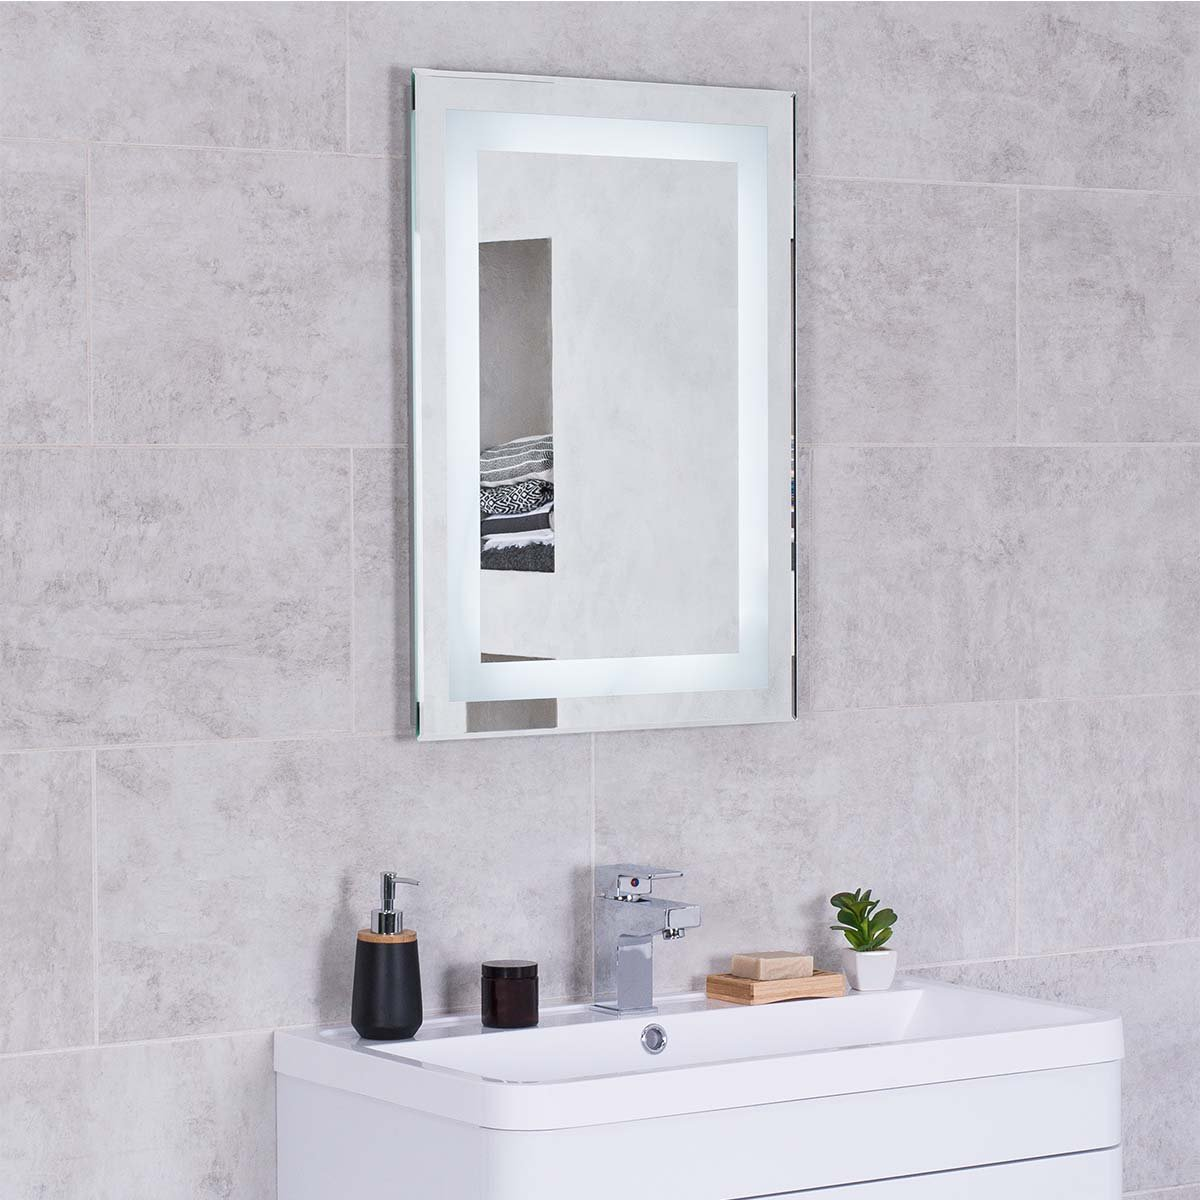 Bathroom Mirror Replacement Designer Illuminated Led Bathroom Mirrors With Demister